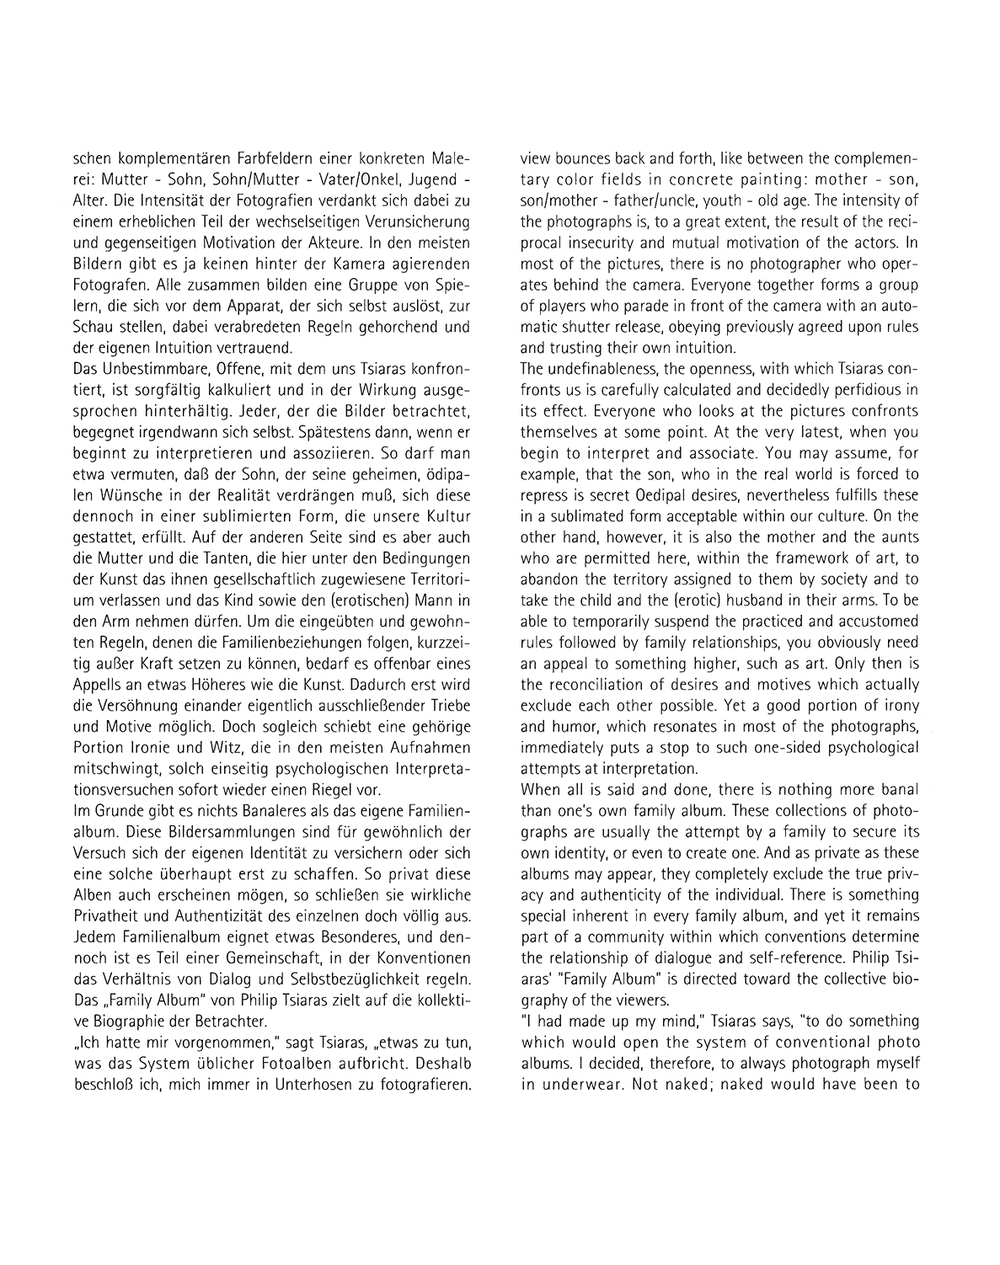 international-photo-pg3.jpg